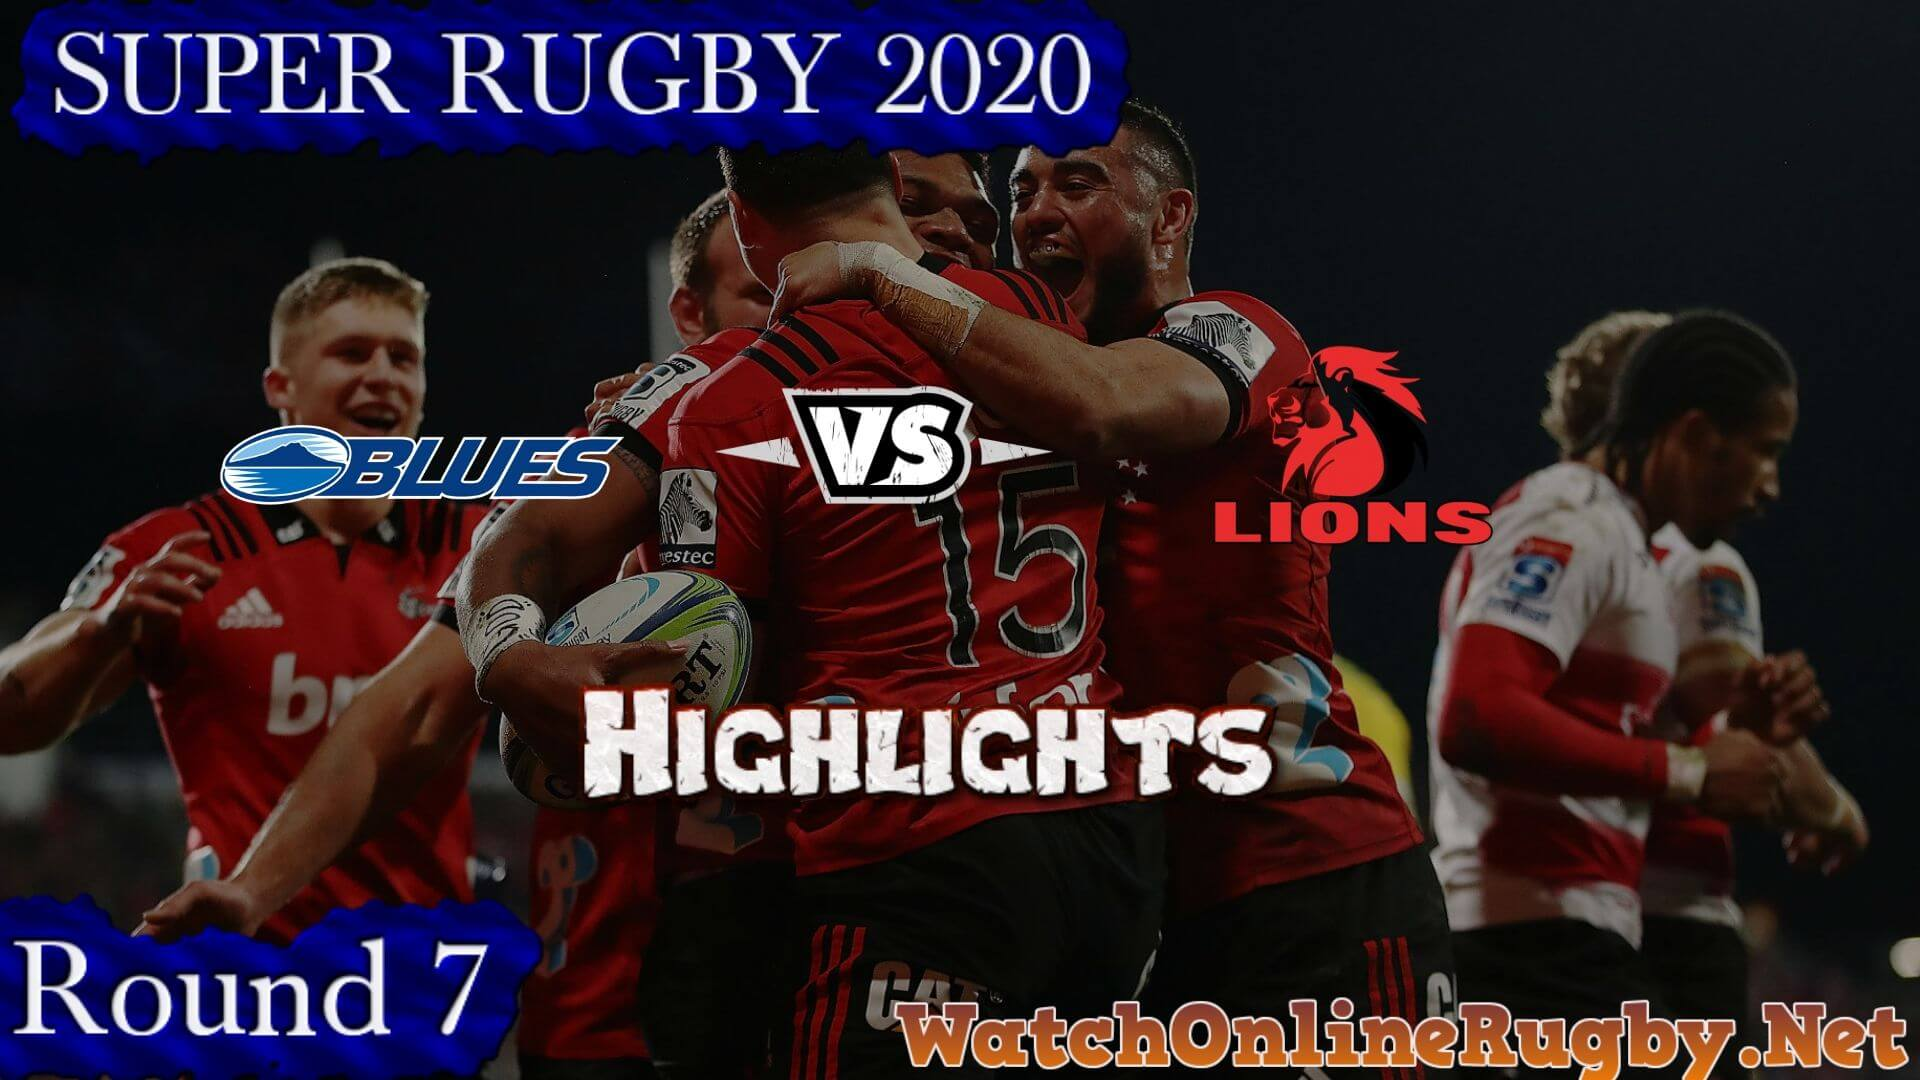 BLUES Vs LIONS Highlights 2020 Super Rugby Rd 7